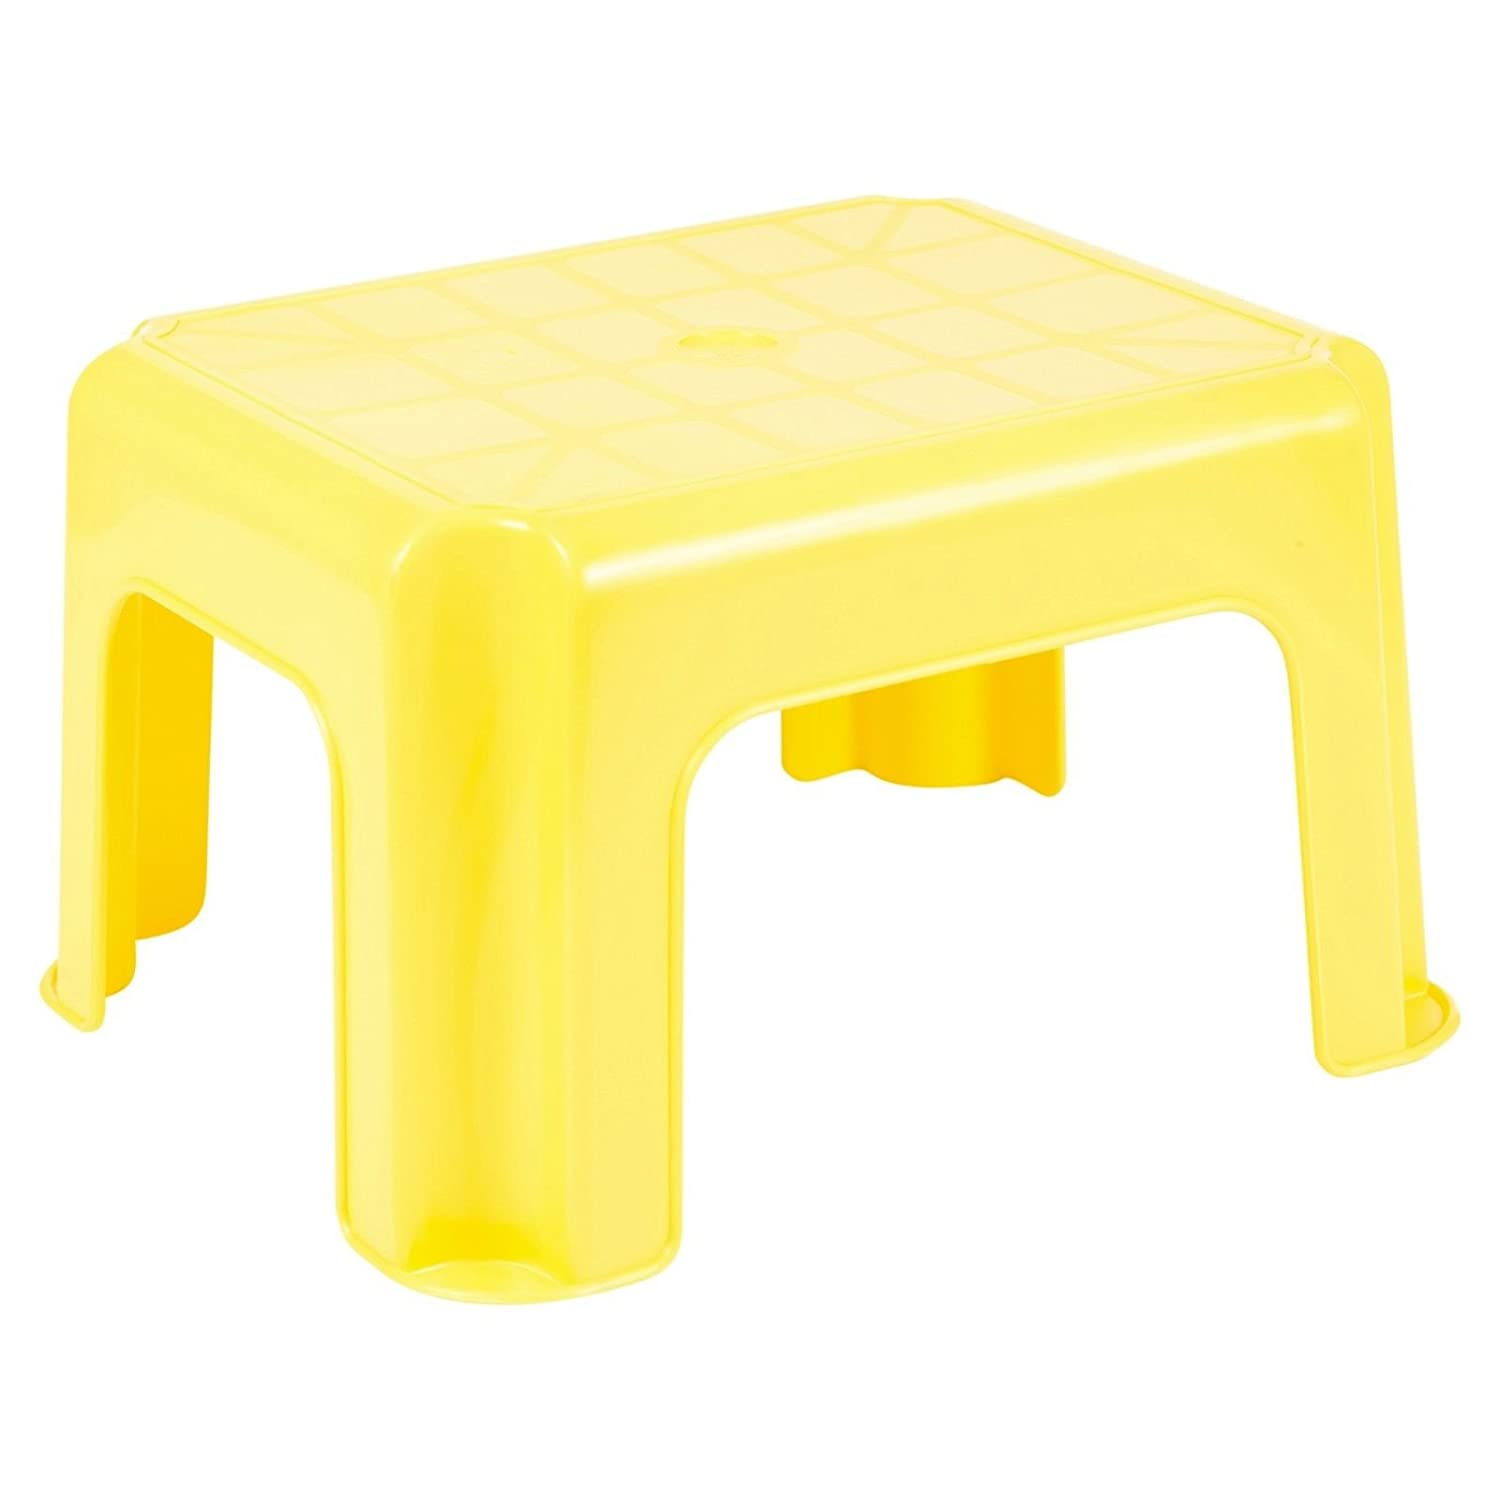 Easygift Products Multi Purpose Step Stool Sturdy Stackable Plastic